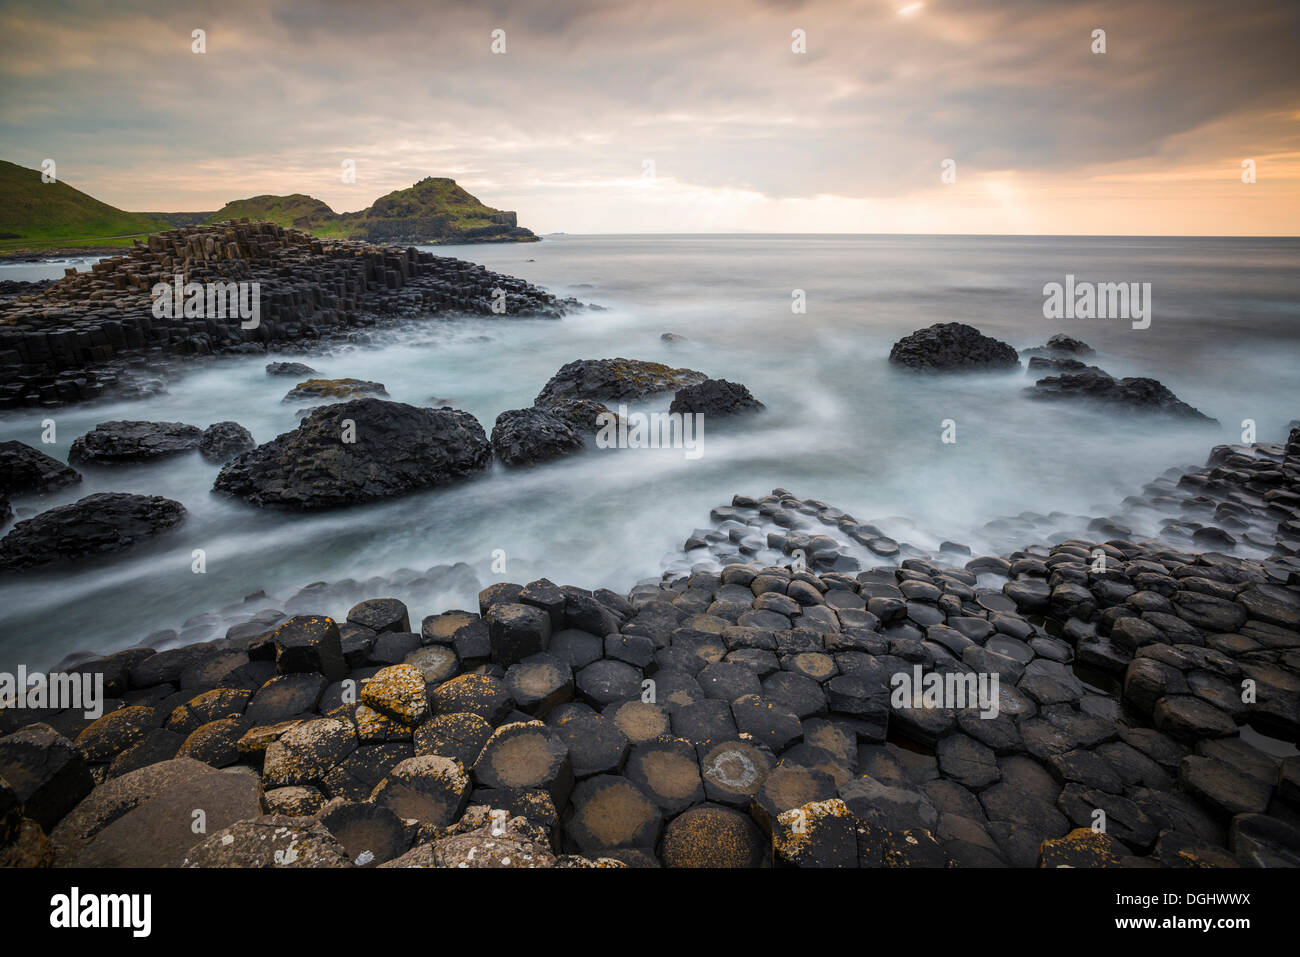 Basalt columns at the Giant's Causeway, Causeway Coast, County Antrim, Northern Ireland, United Kingdom, Europe - Stock Image